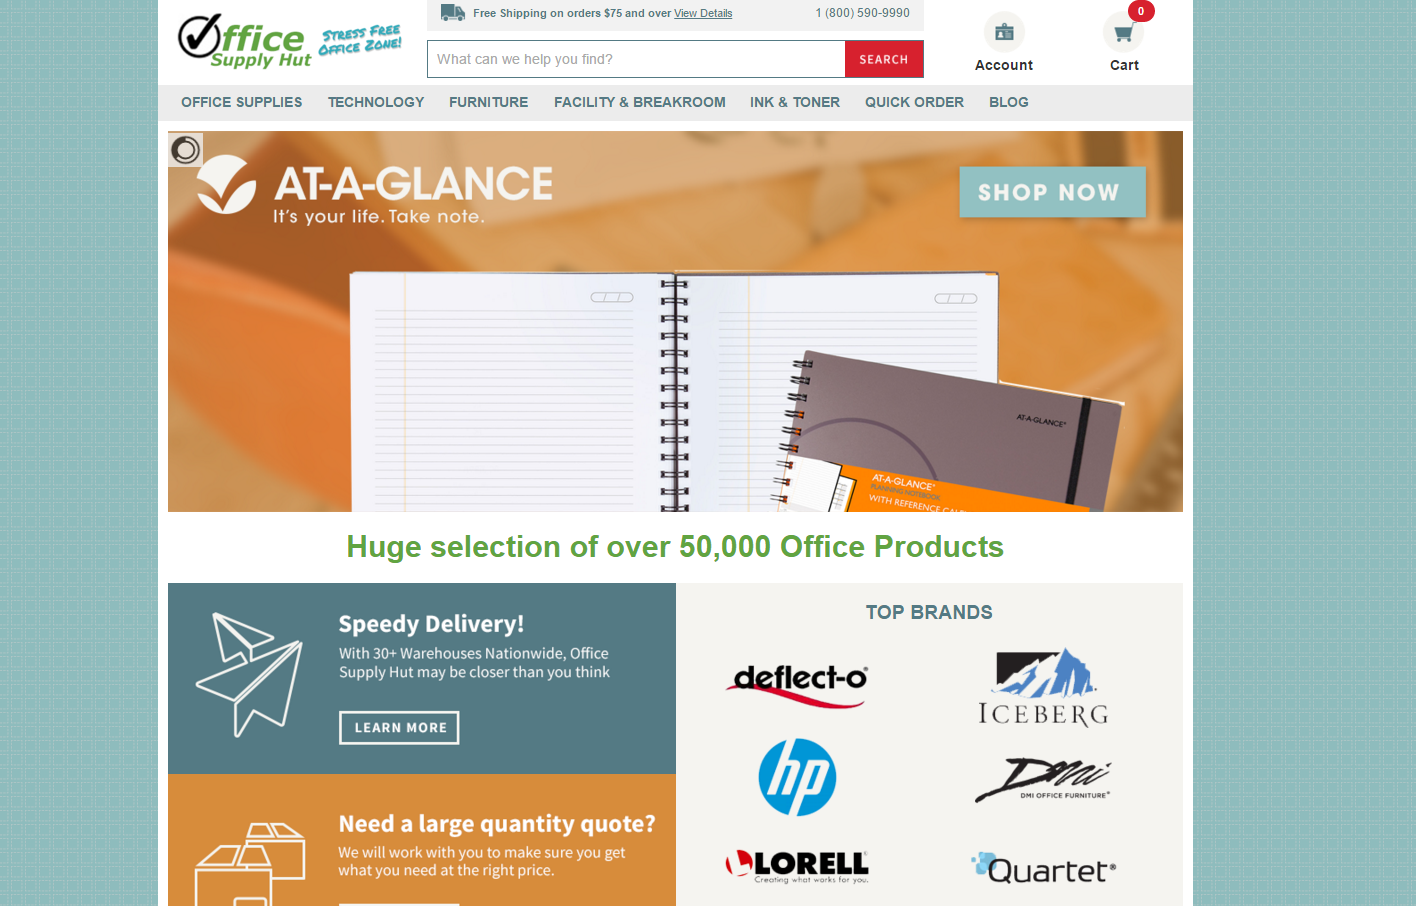 Office Supply Hut Redesigns Their Website With A List Of New And Impressive Enhancements